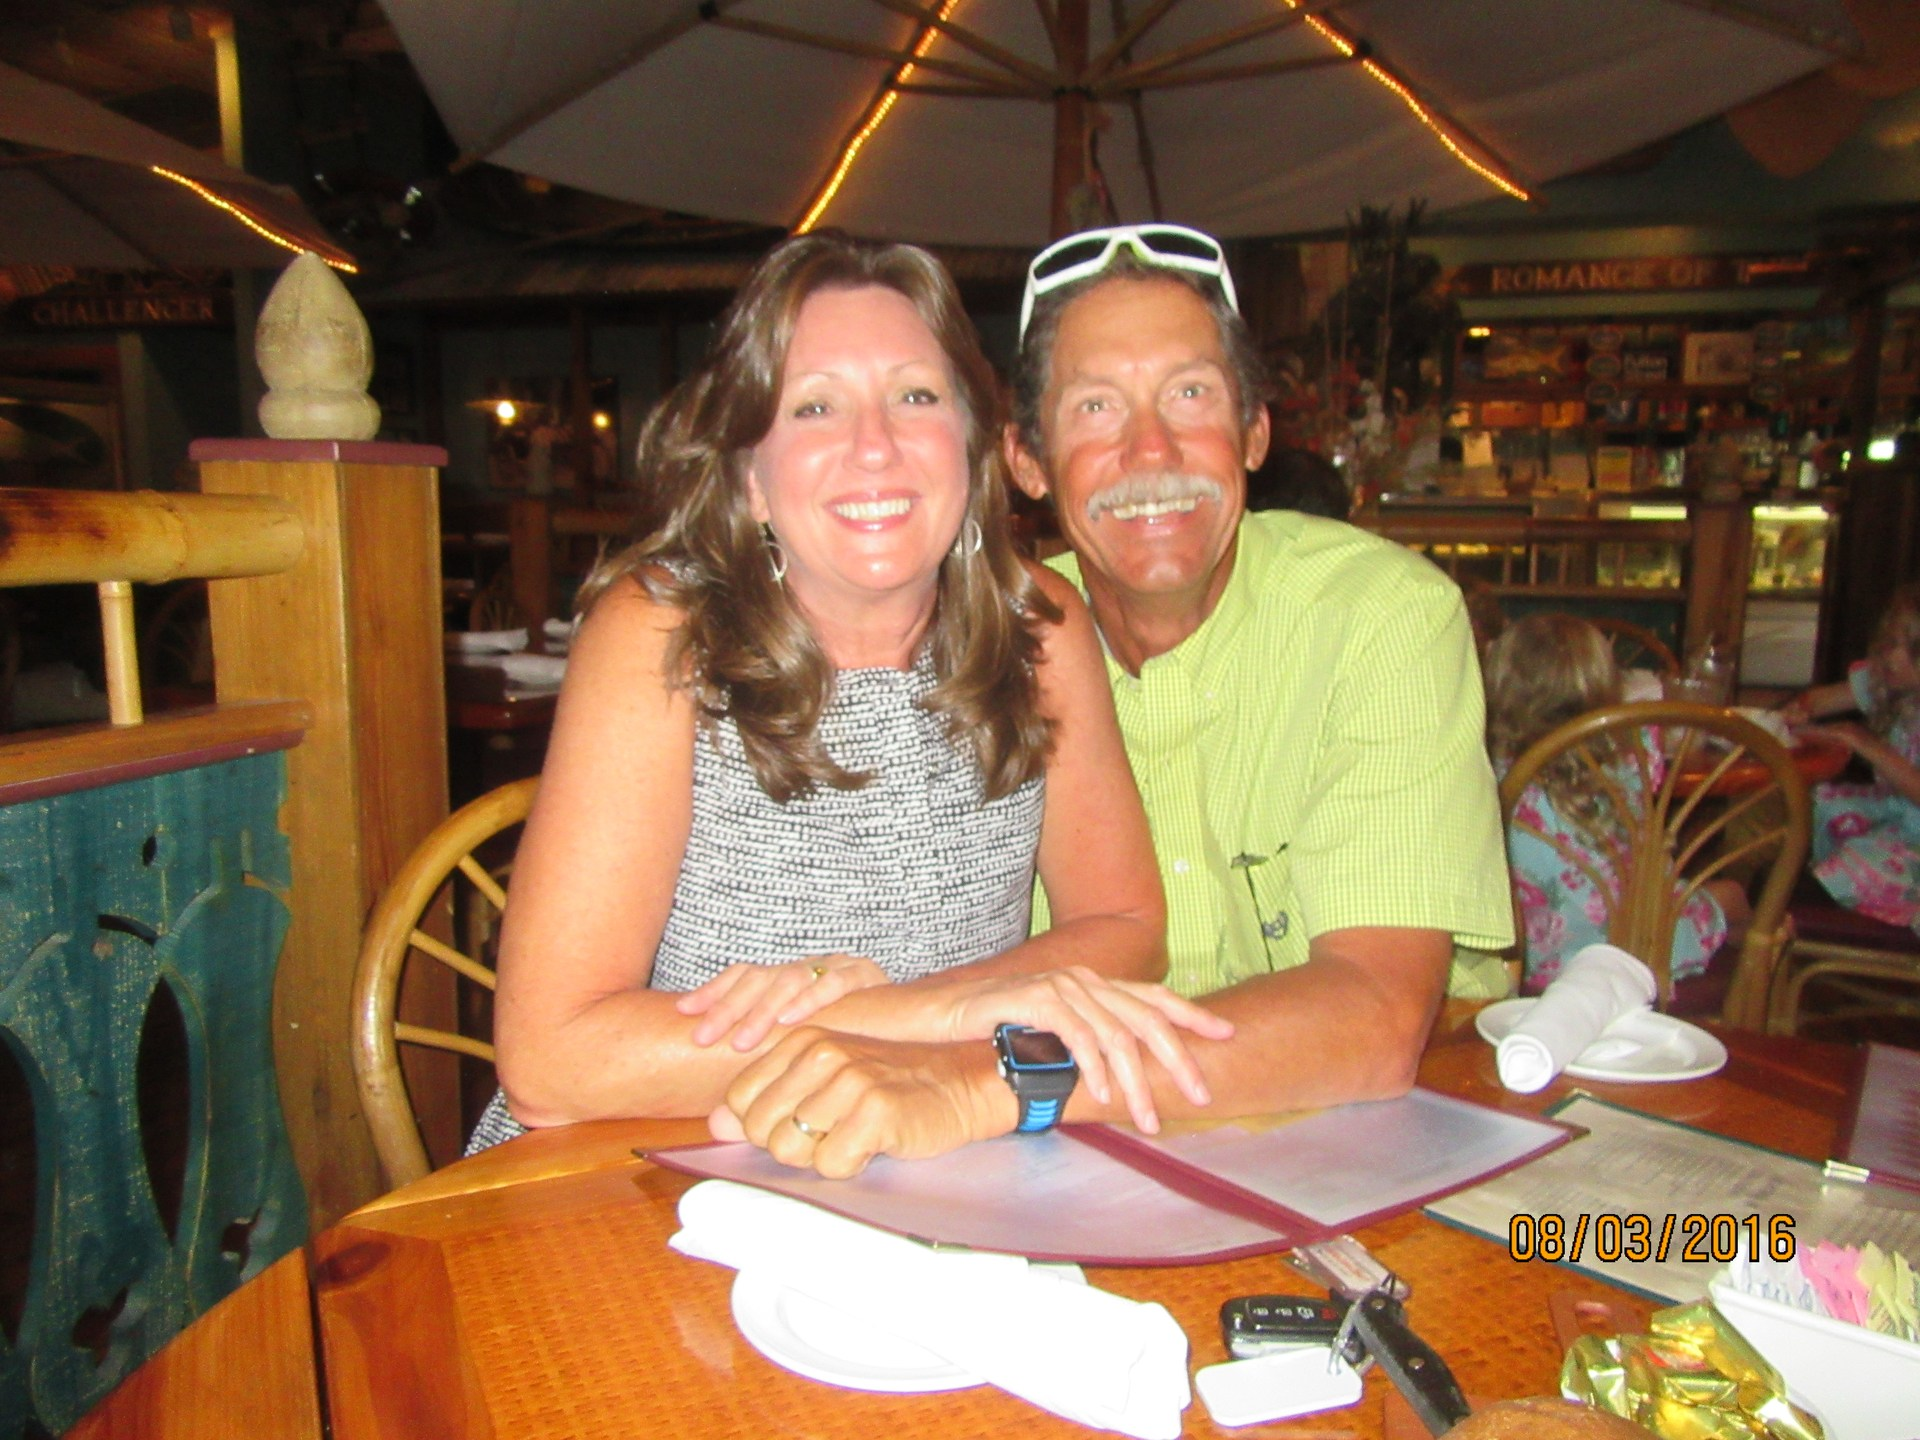 Dinner with my wife in Sanibel Island Florida